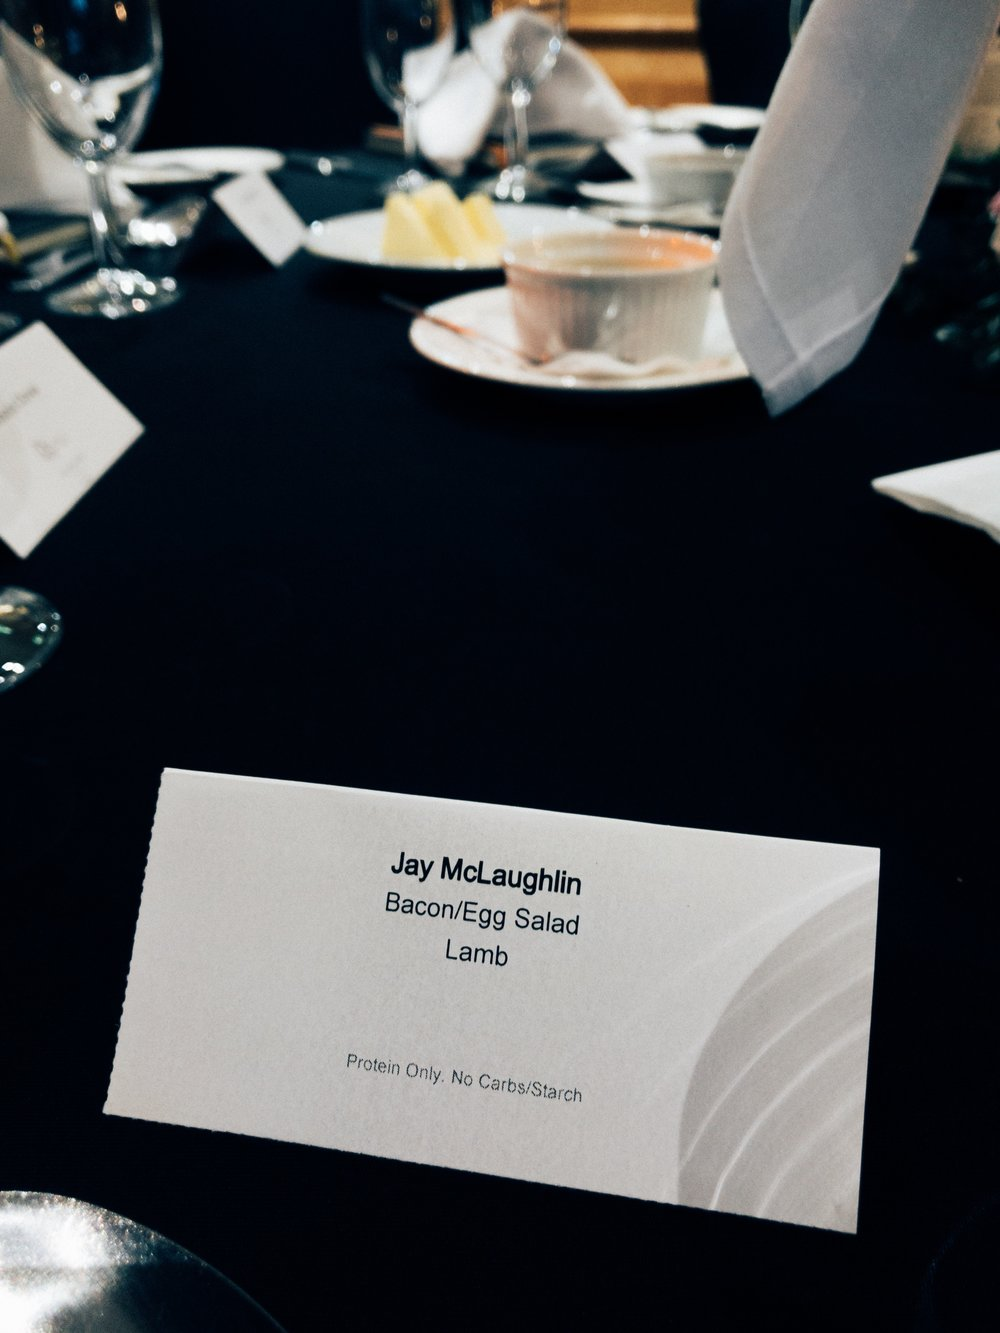 People's reactions to the carnivore diet Jessops Conference Gala Dinner Zero Carb Protein Only No Carbs Starch Lamb Bacon Egg Salad Jay McLaughlin Name Card